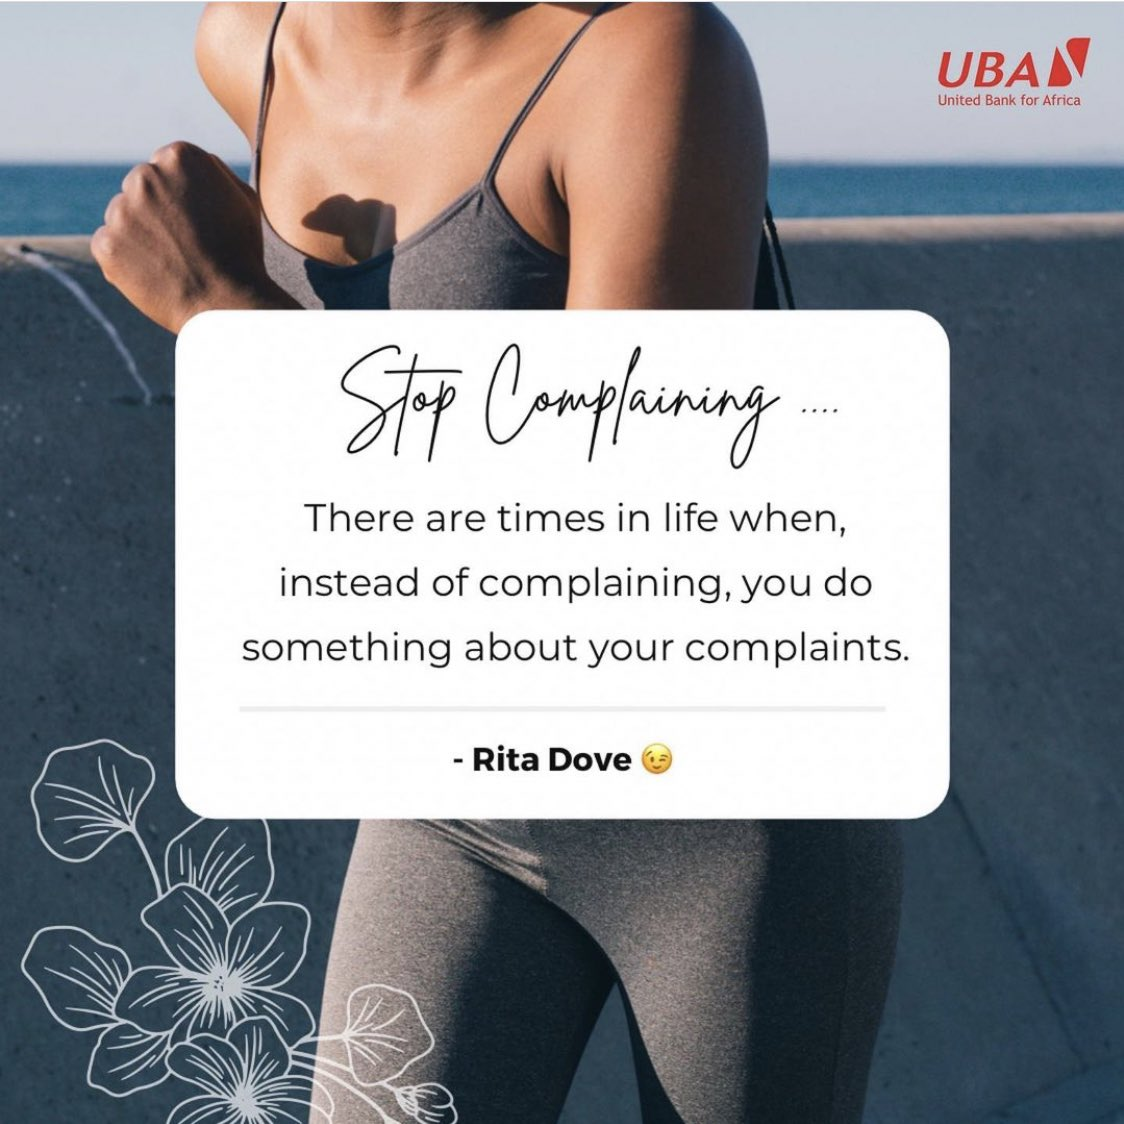 In 2021, Less complaints, More action 👍. Who wants to take up this challenge for the year 2021?!   #UBANuggets #AfricasGlobalBank #UBACares